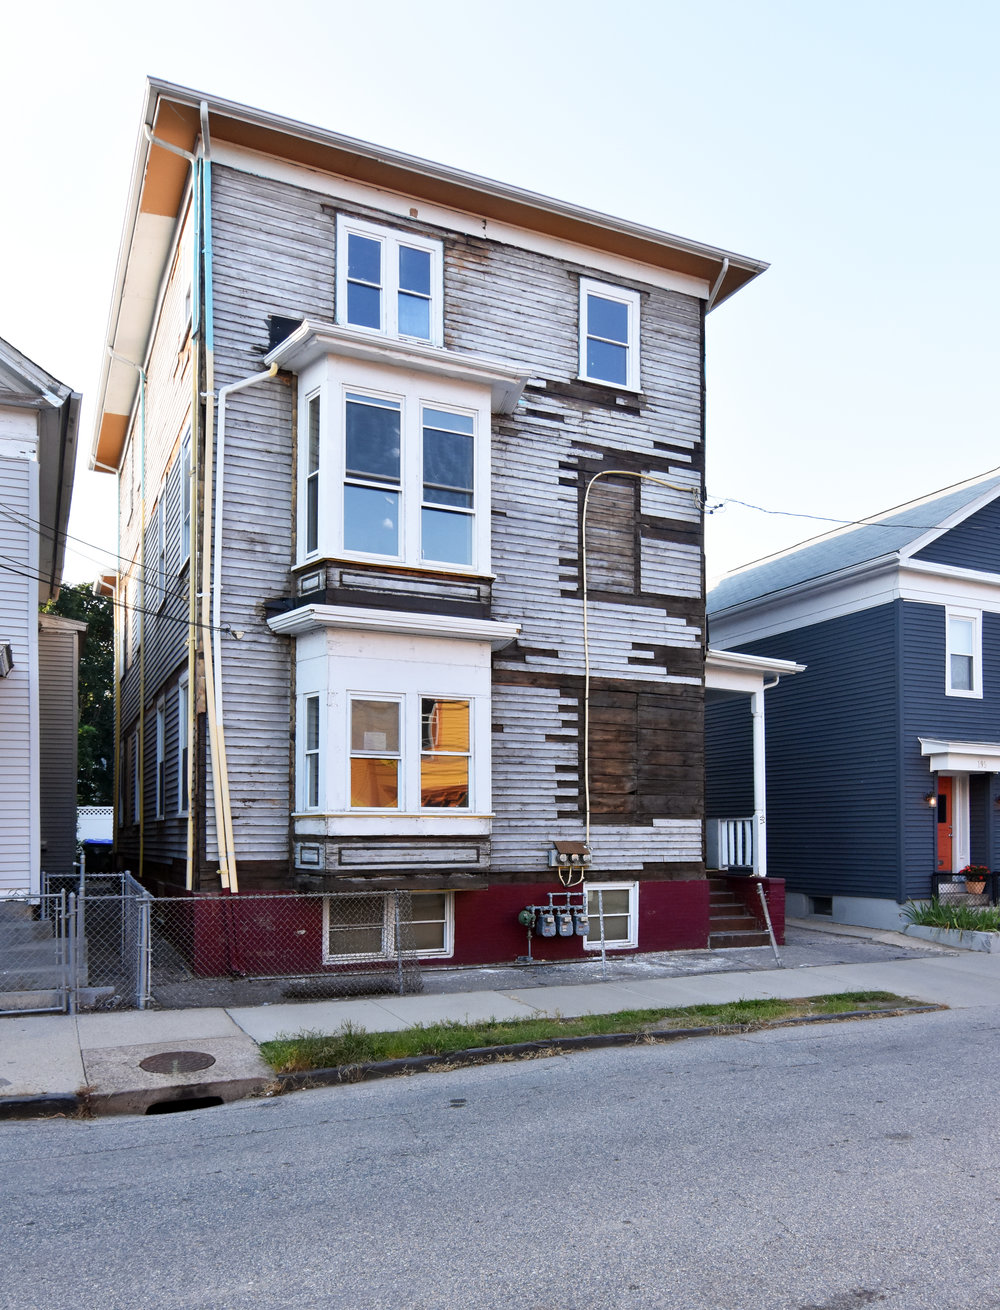 WBNA HOUSE TOUR  FROM VACANT TO VIBRANT 197 Carpenter Street   BUY TICKETS